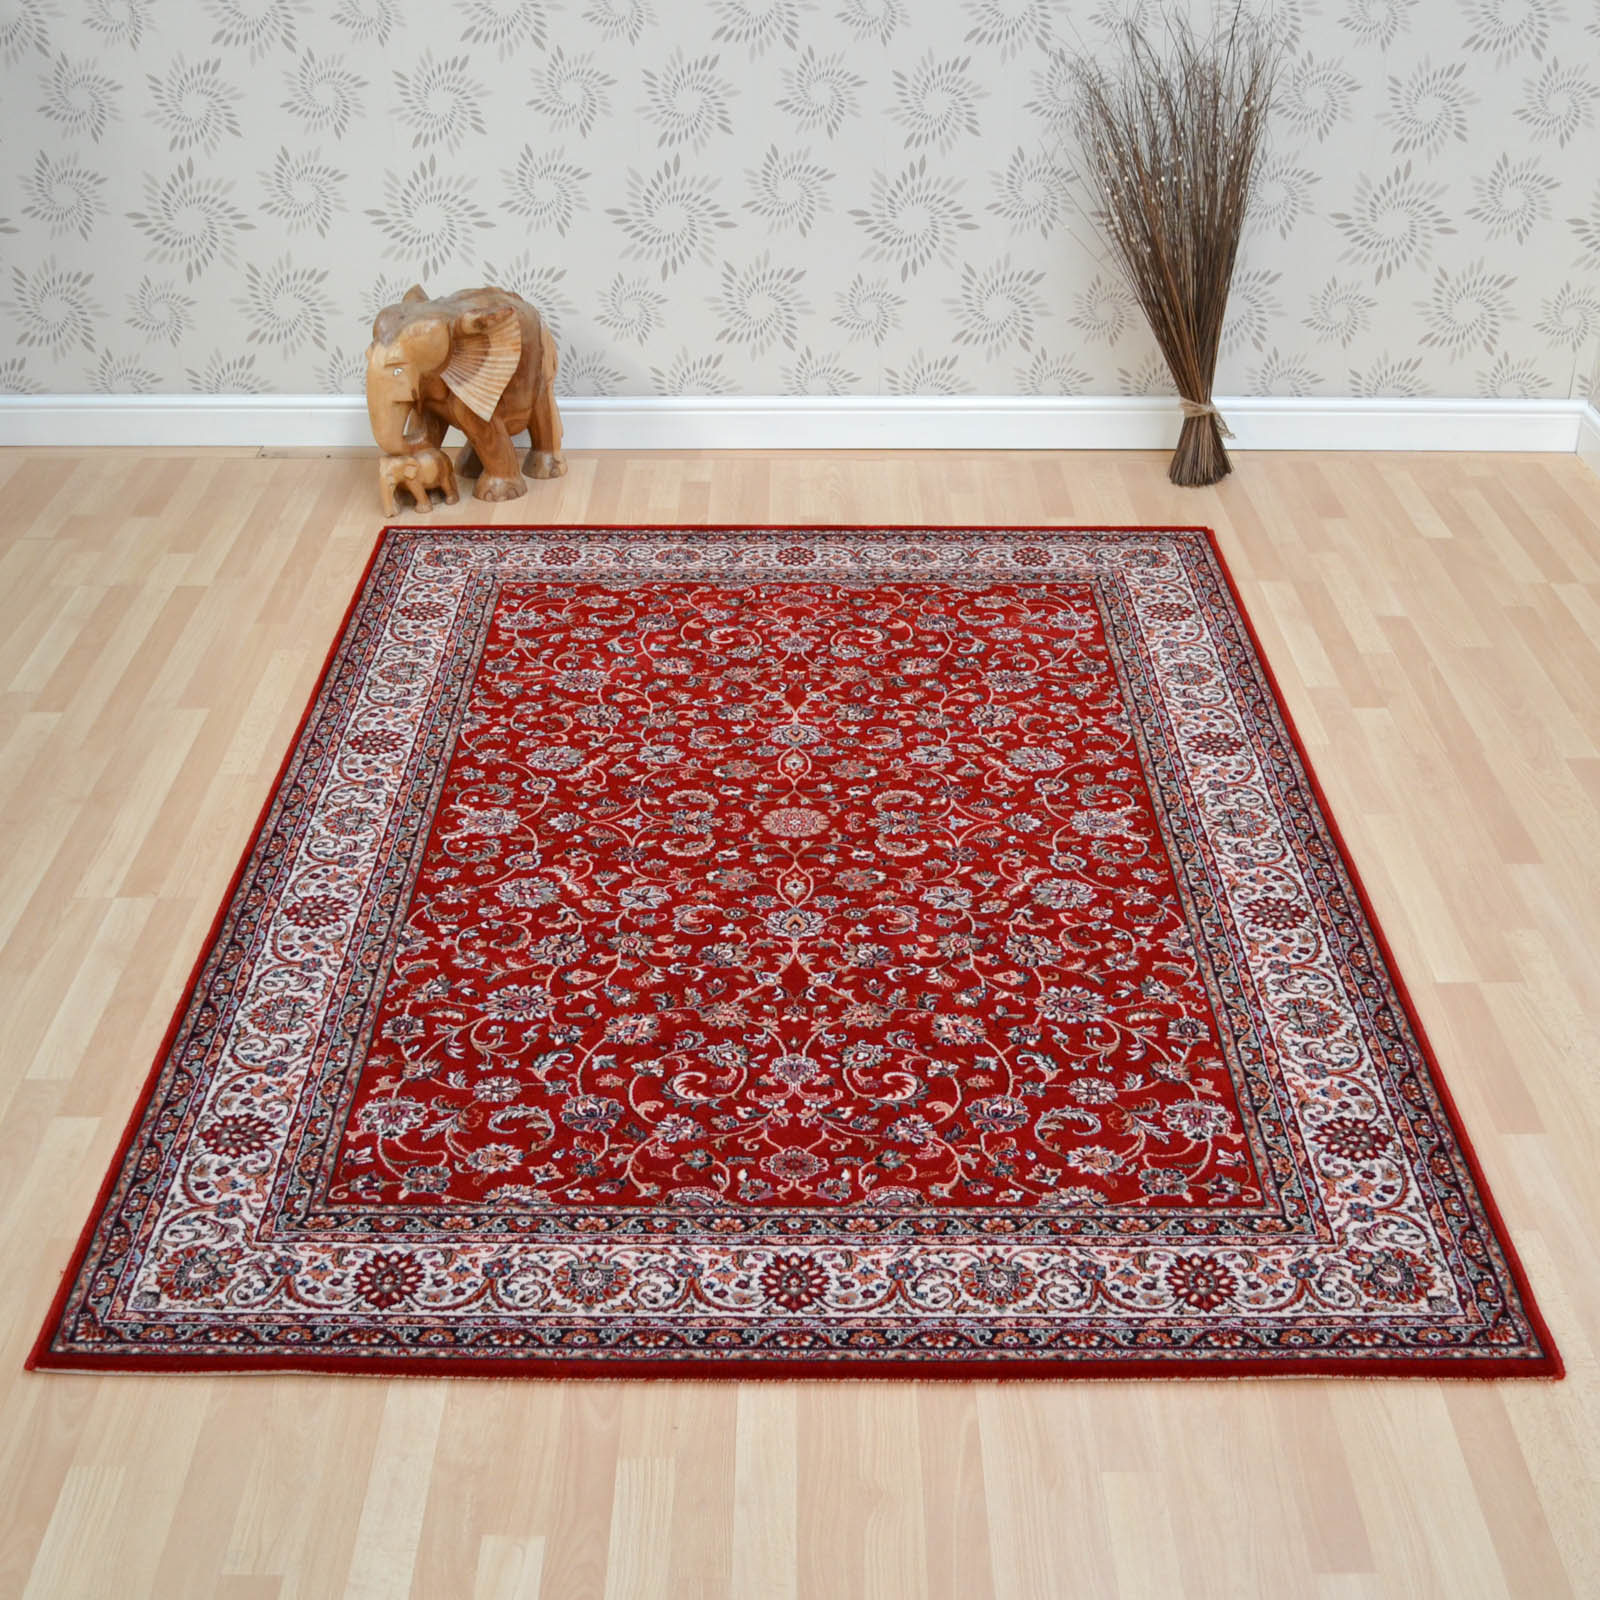 Farsistan Rugs 5604 677 Red